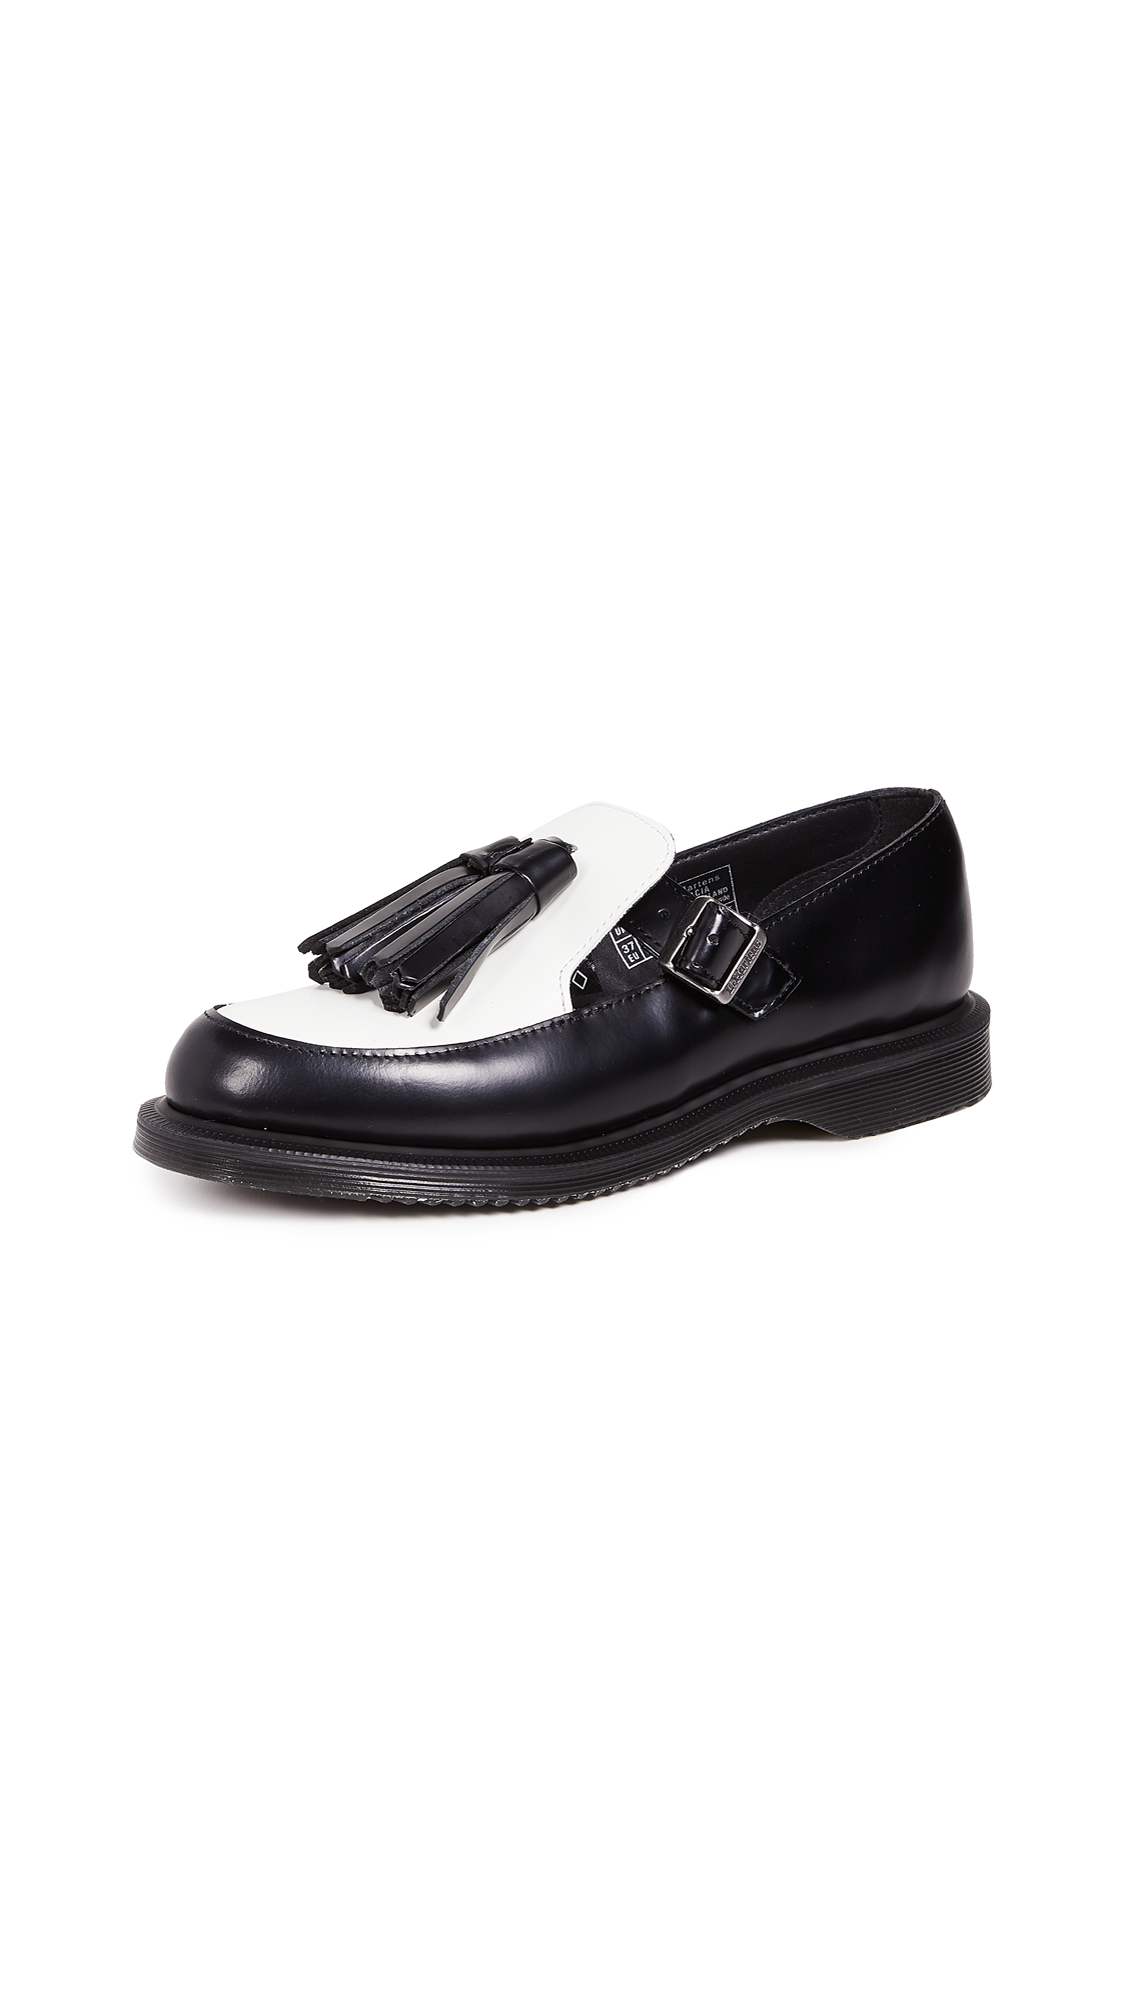 Gracia Mary Jane Shoes, Black